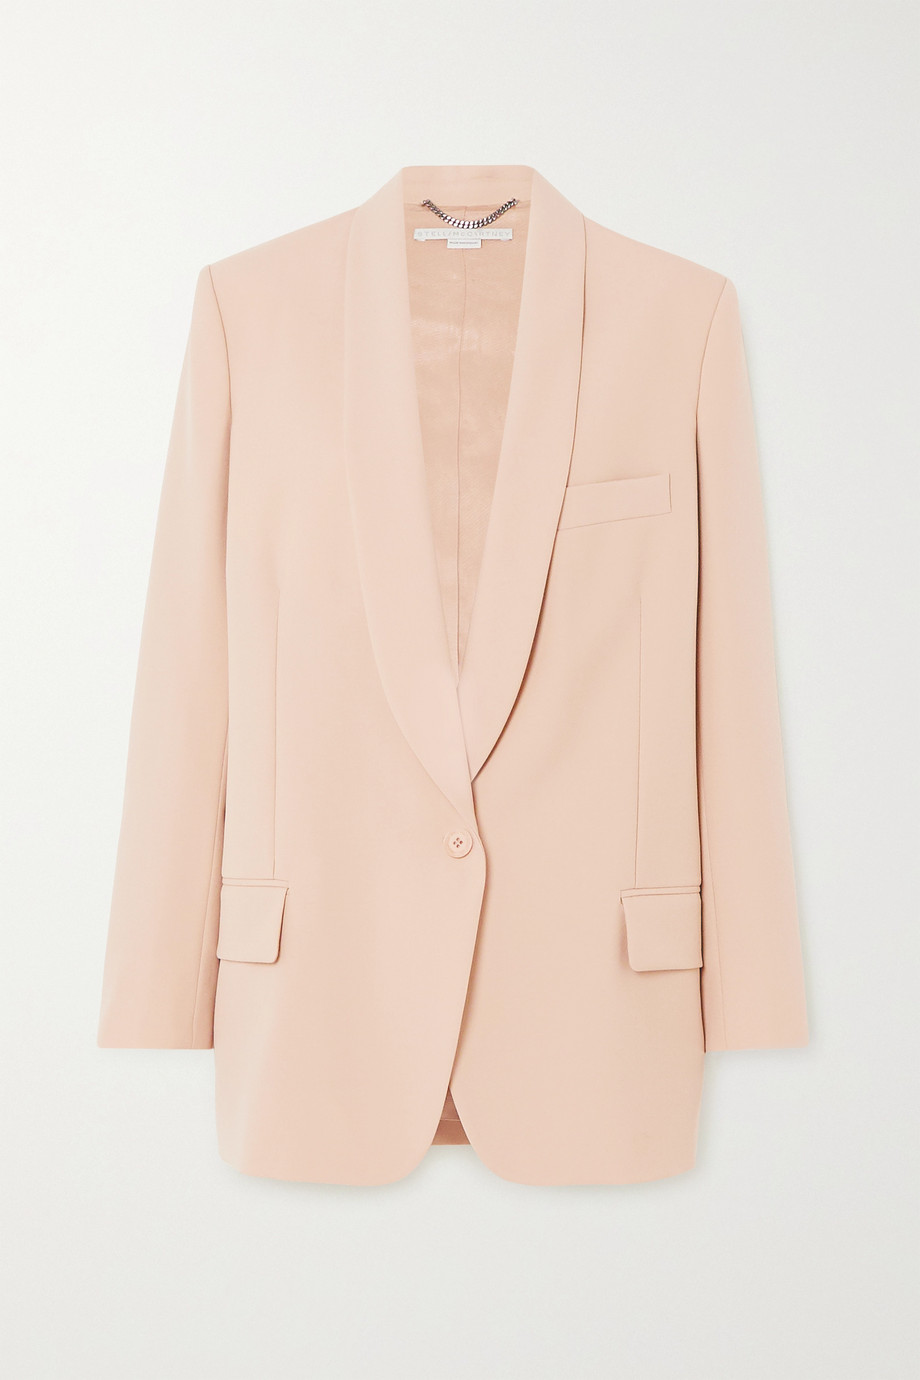 Stella McCartney Allison grain de poudre wool blazer